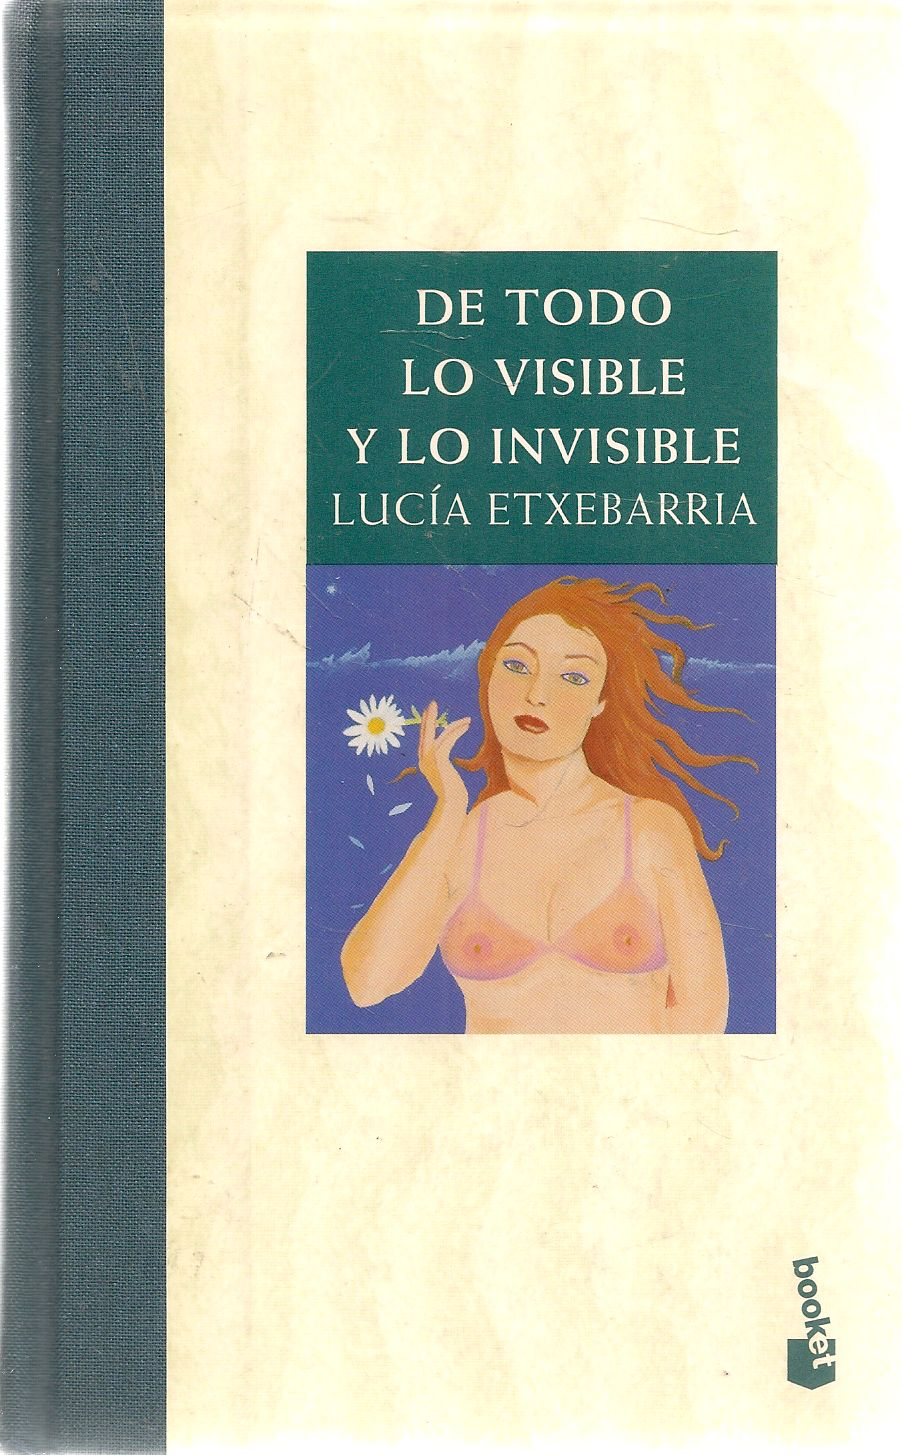 DE TODO LO VISIBLE Y LO INVISIBLE - LUCIA ETXEBARRIA - SPANISH TEXT